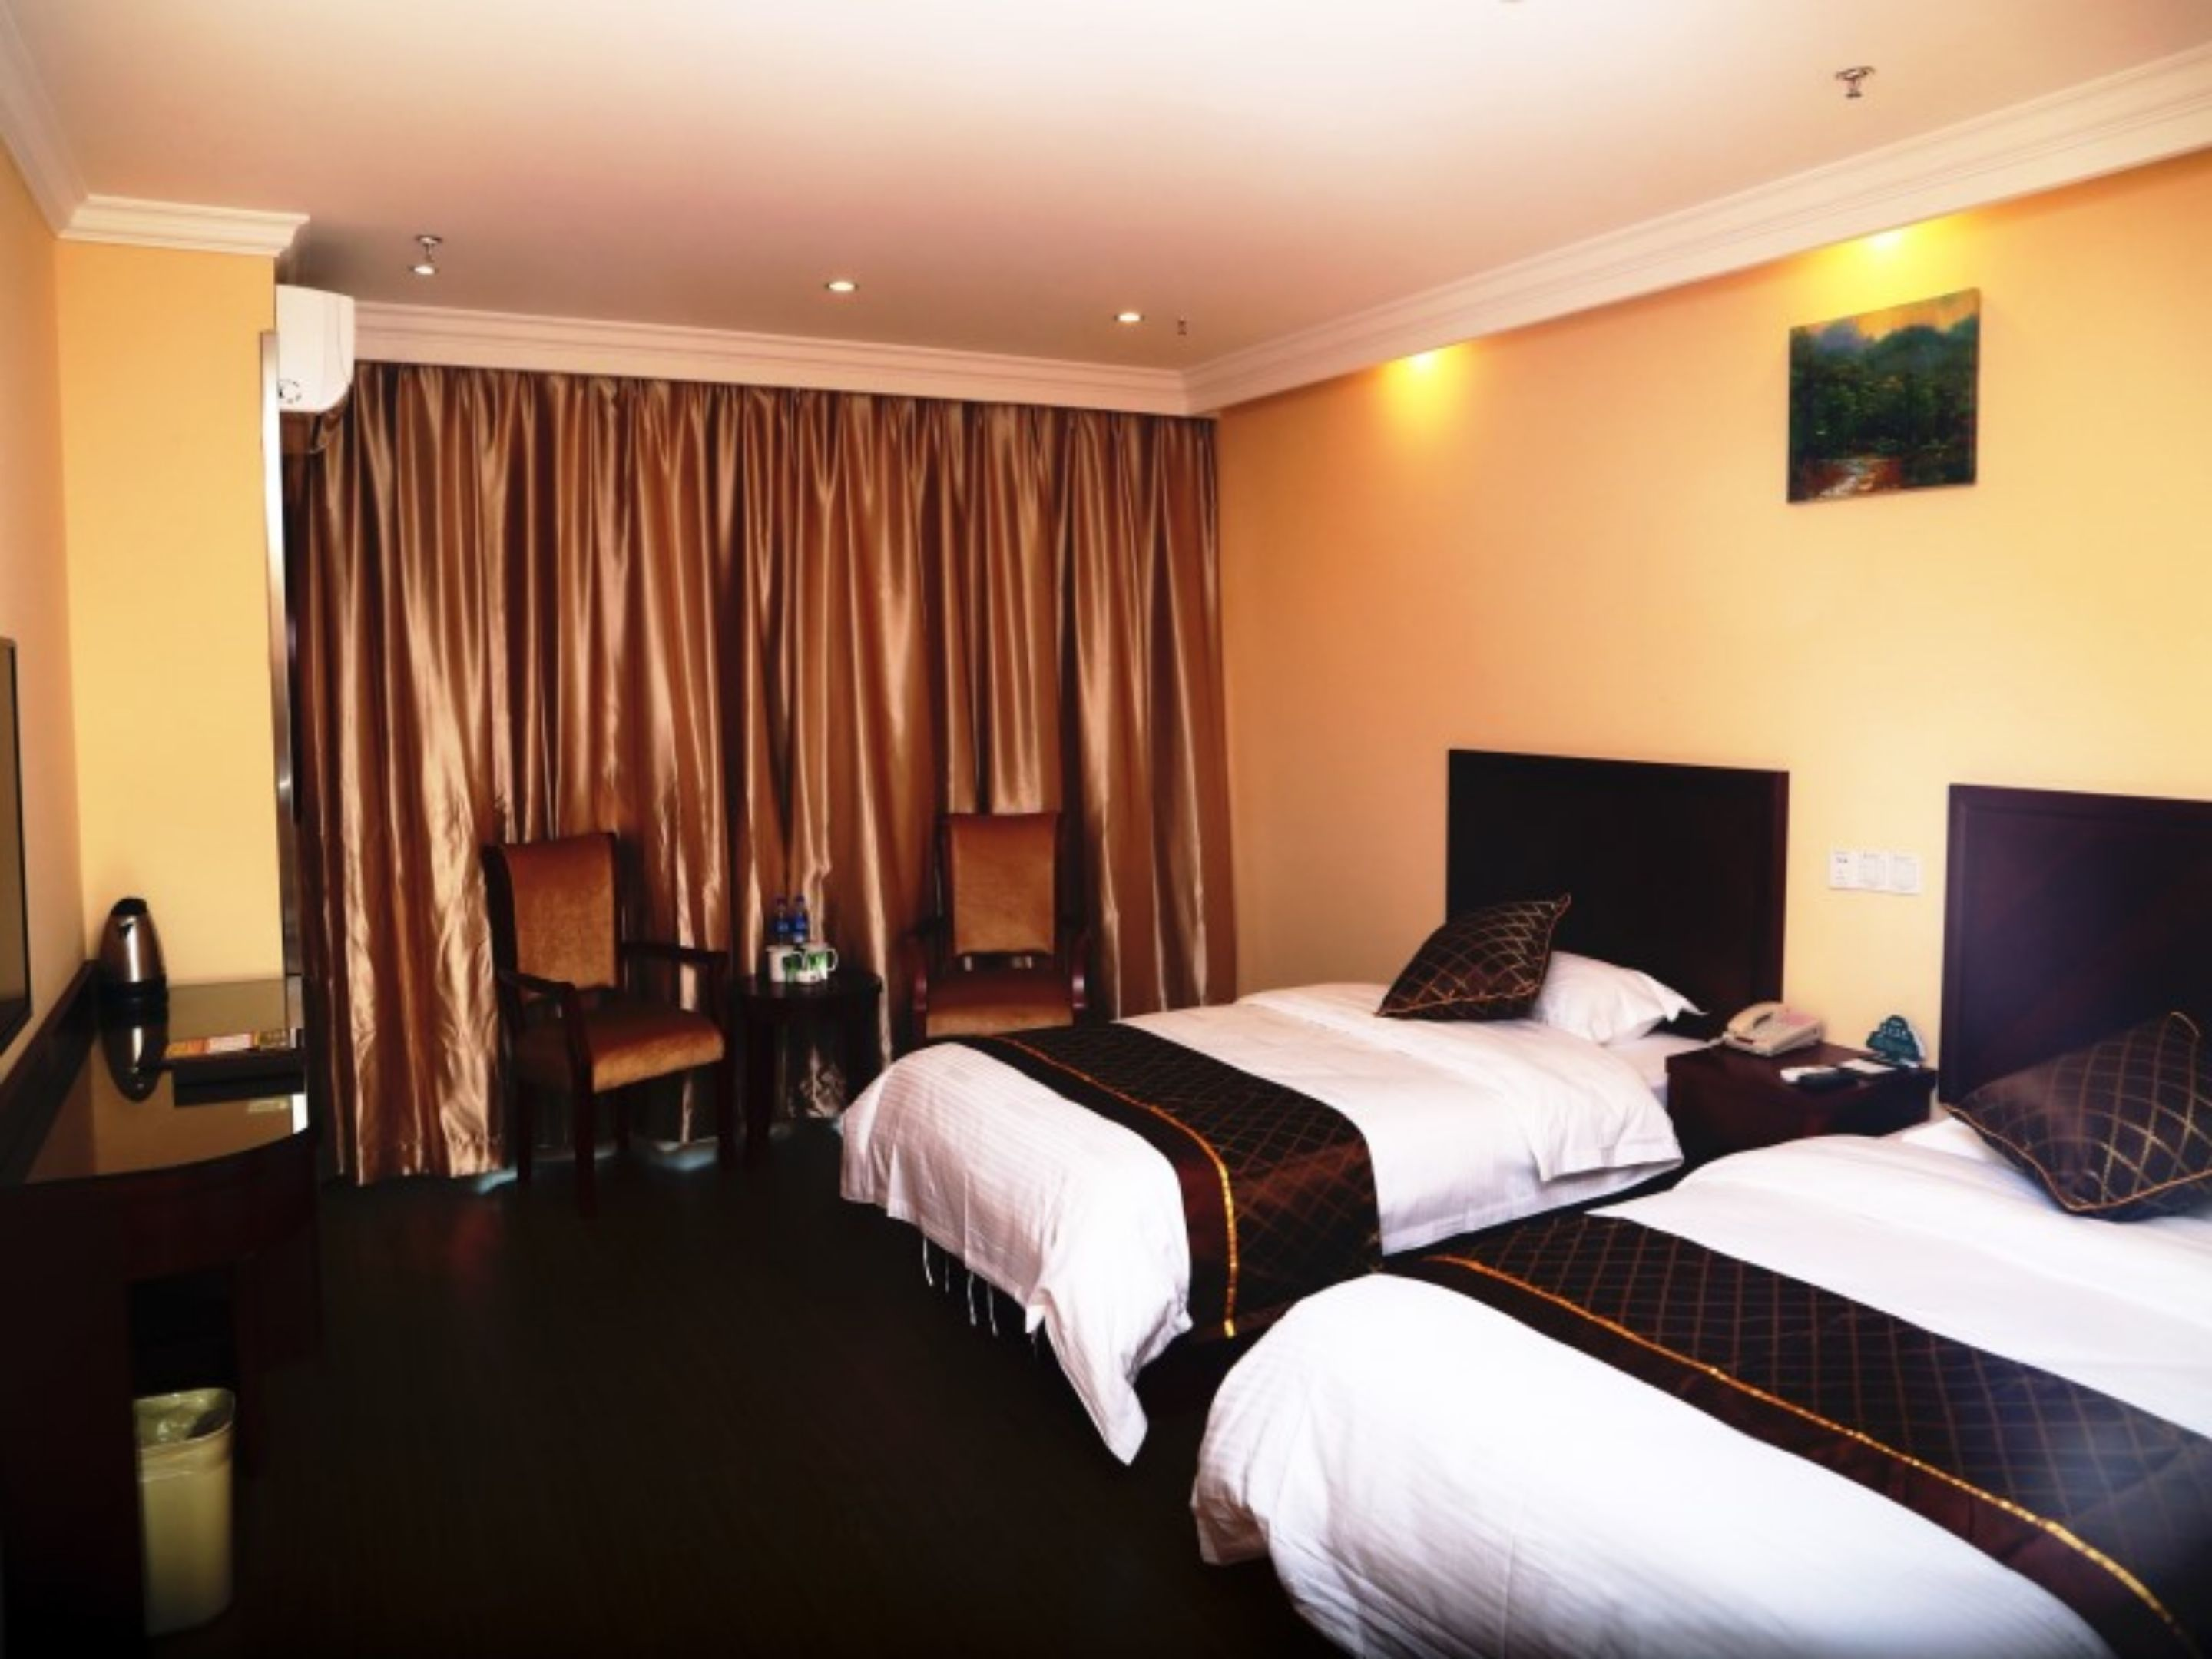 Greentree Inn Shanghai Pudong Airport Heqing Huanqing Middle Road Express Hotel